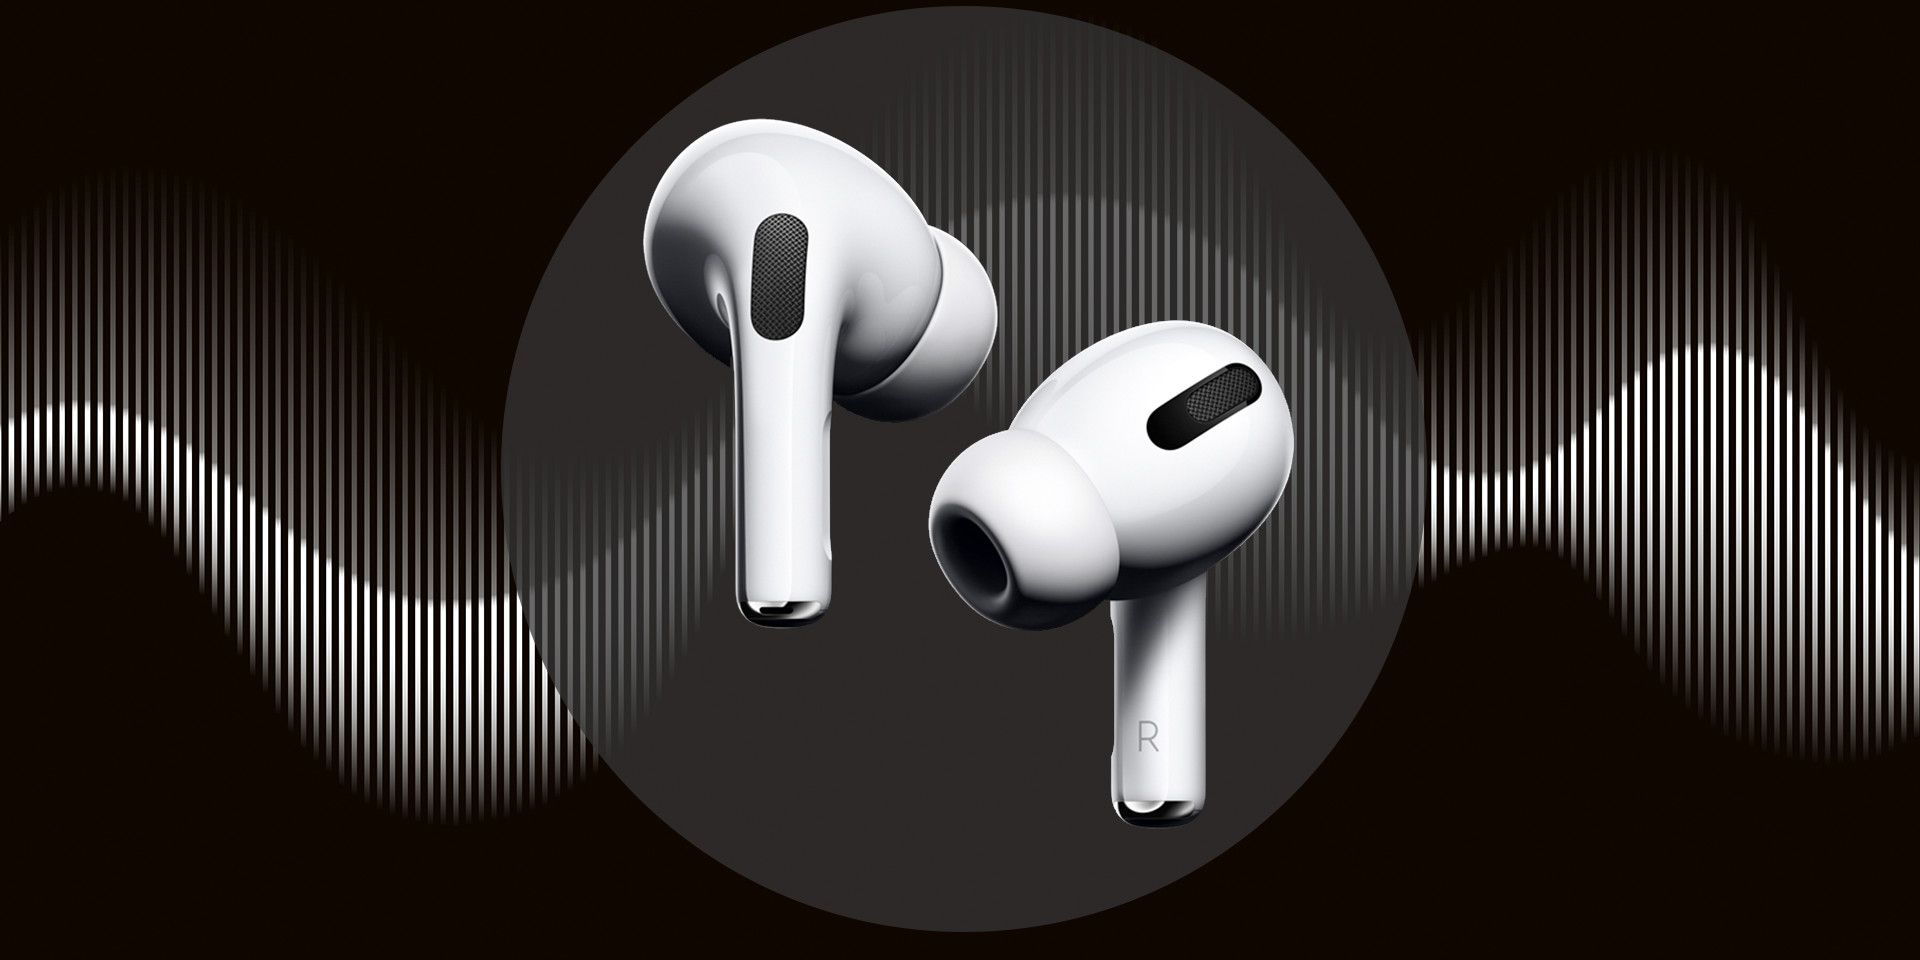 We Tested Out the New Apple AirPods Pro In-Ear Buds with Active Noise Cancellation